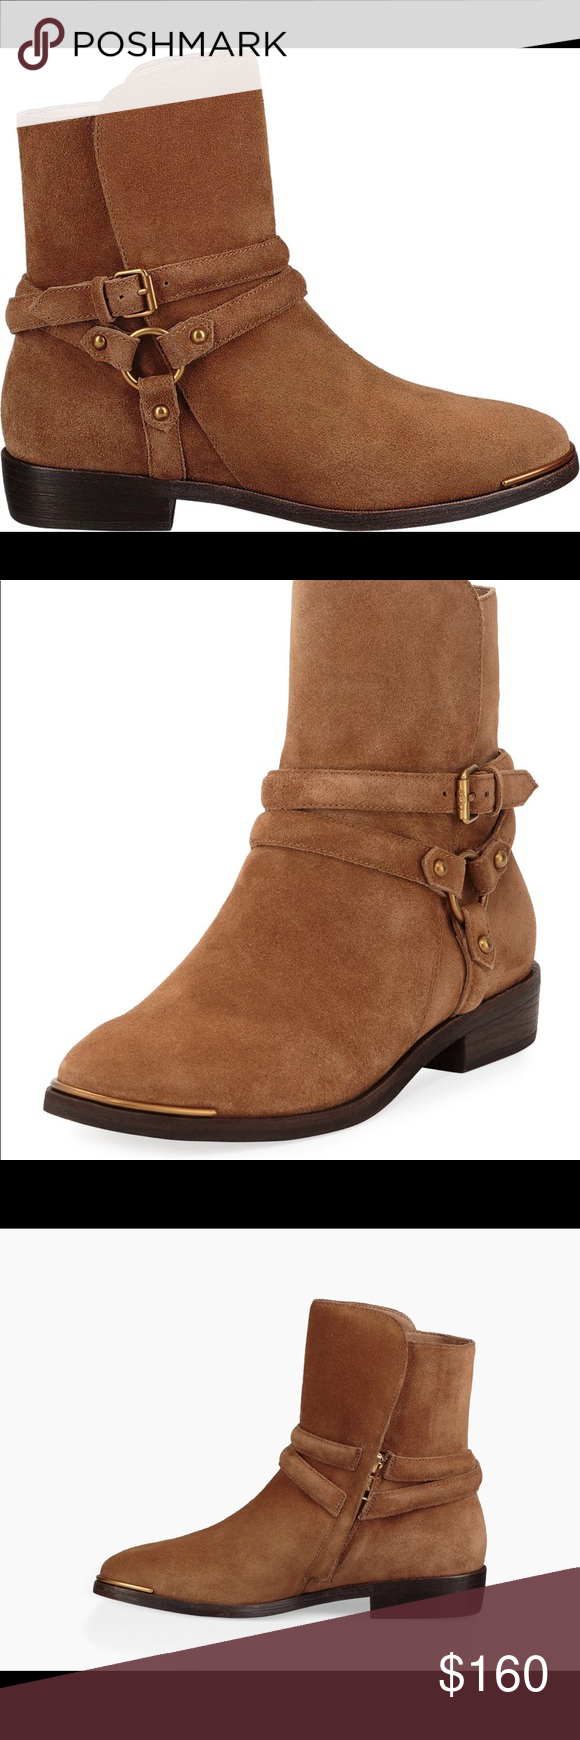 83e621a4079 UGG | Kelby Dark Chestnut Suede Ankle Boots Size 7 UGG KELBY dark ...